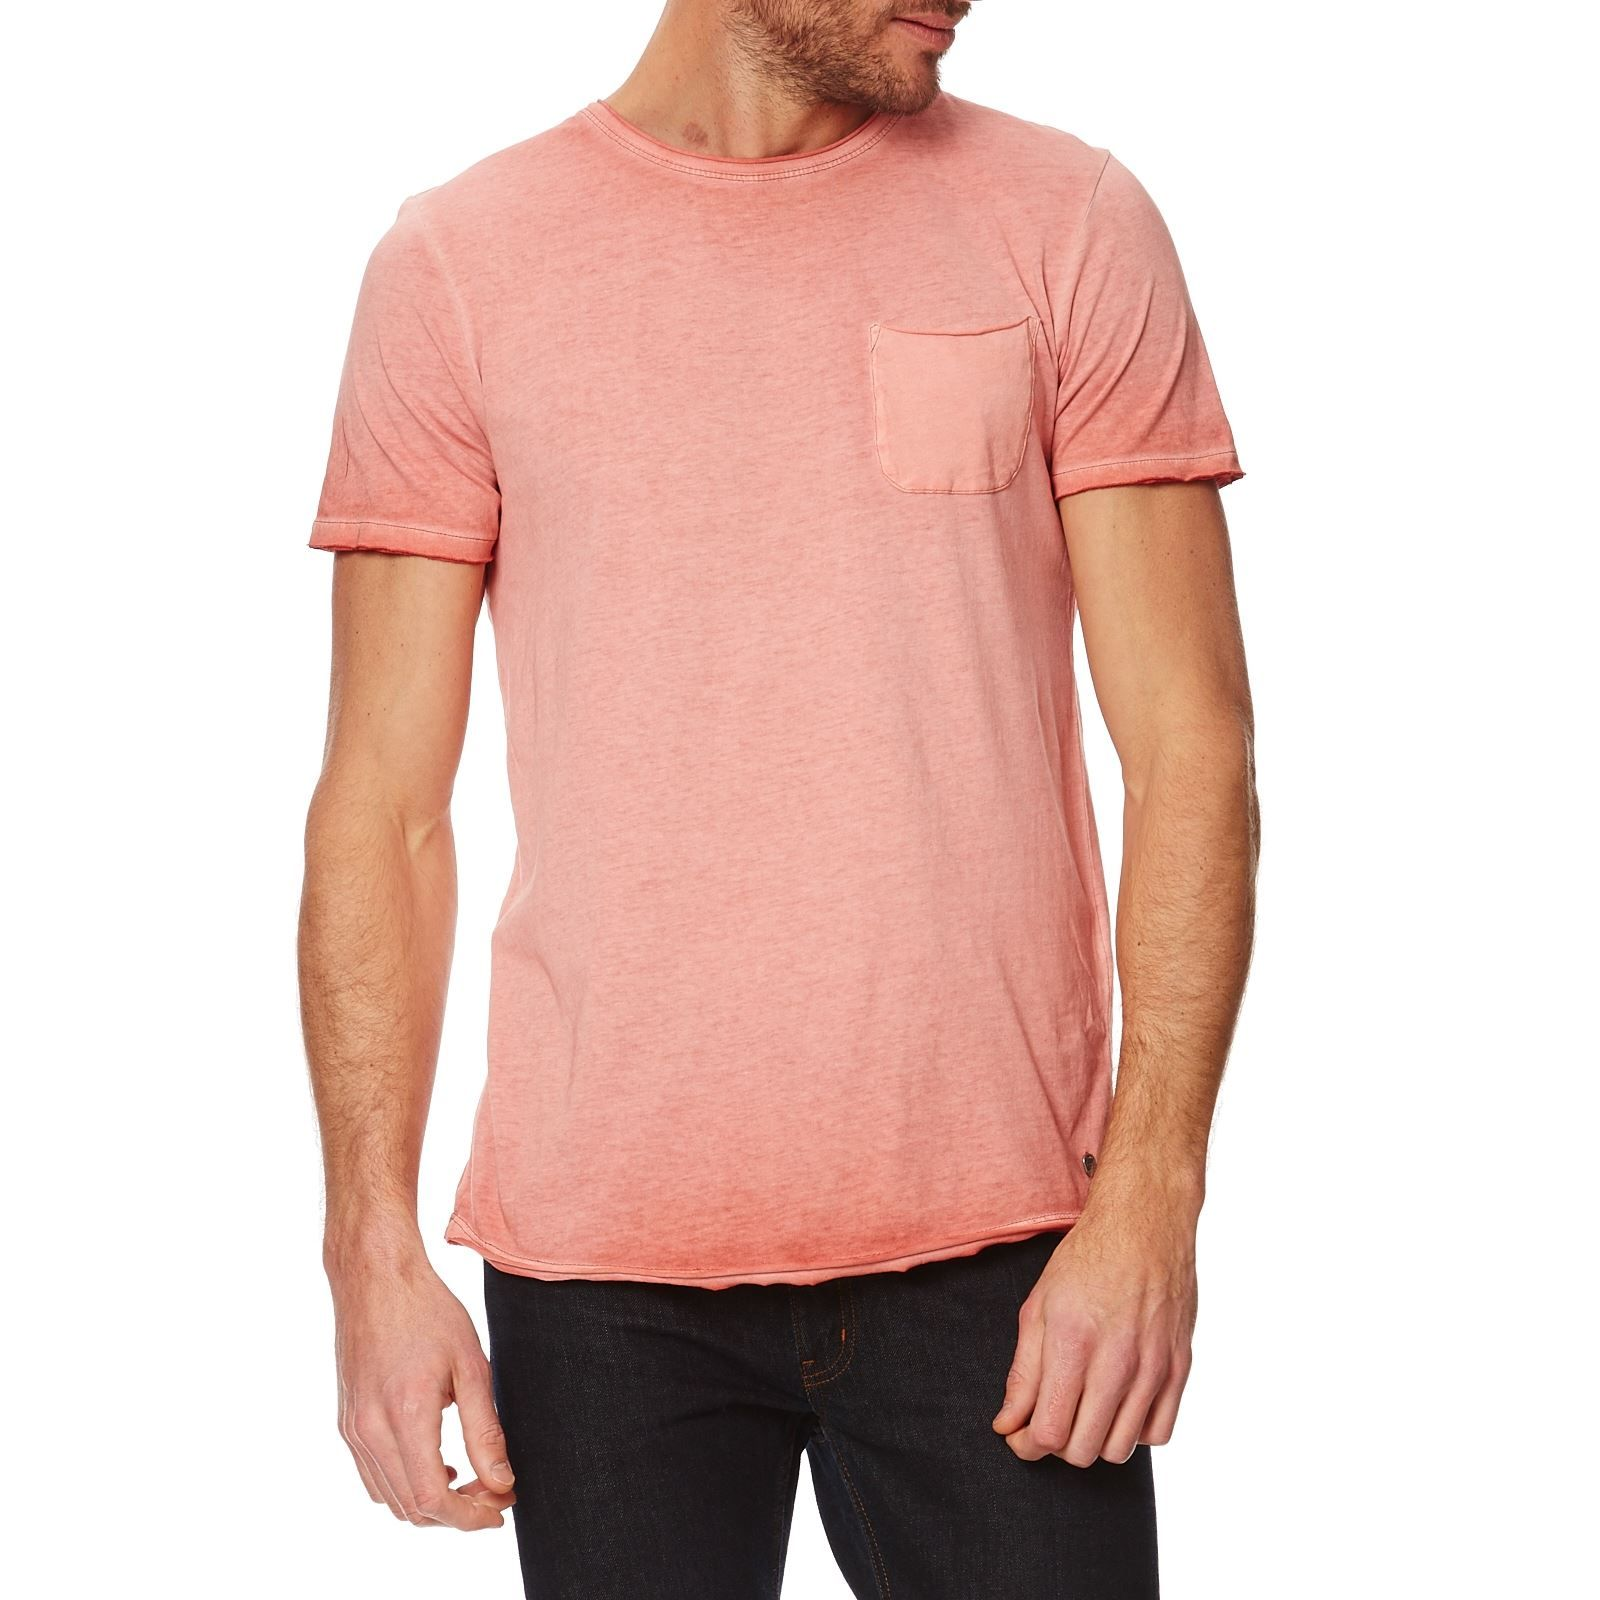 Jones t shirts coupon code